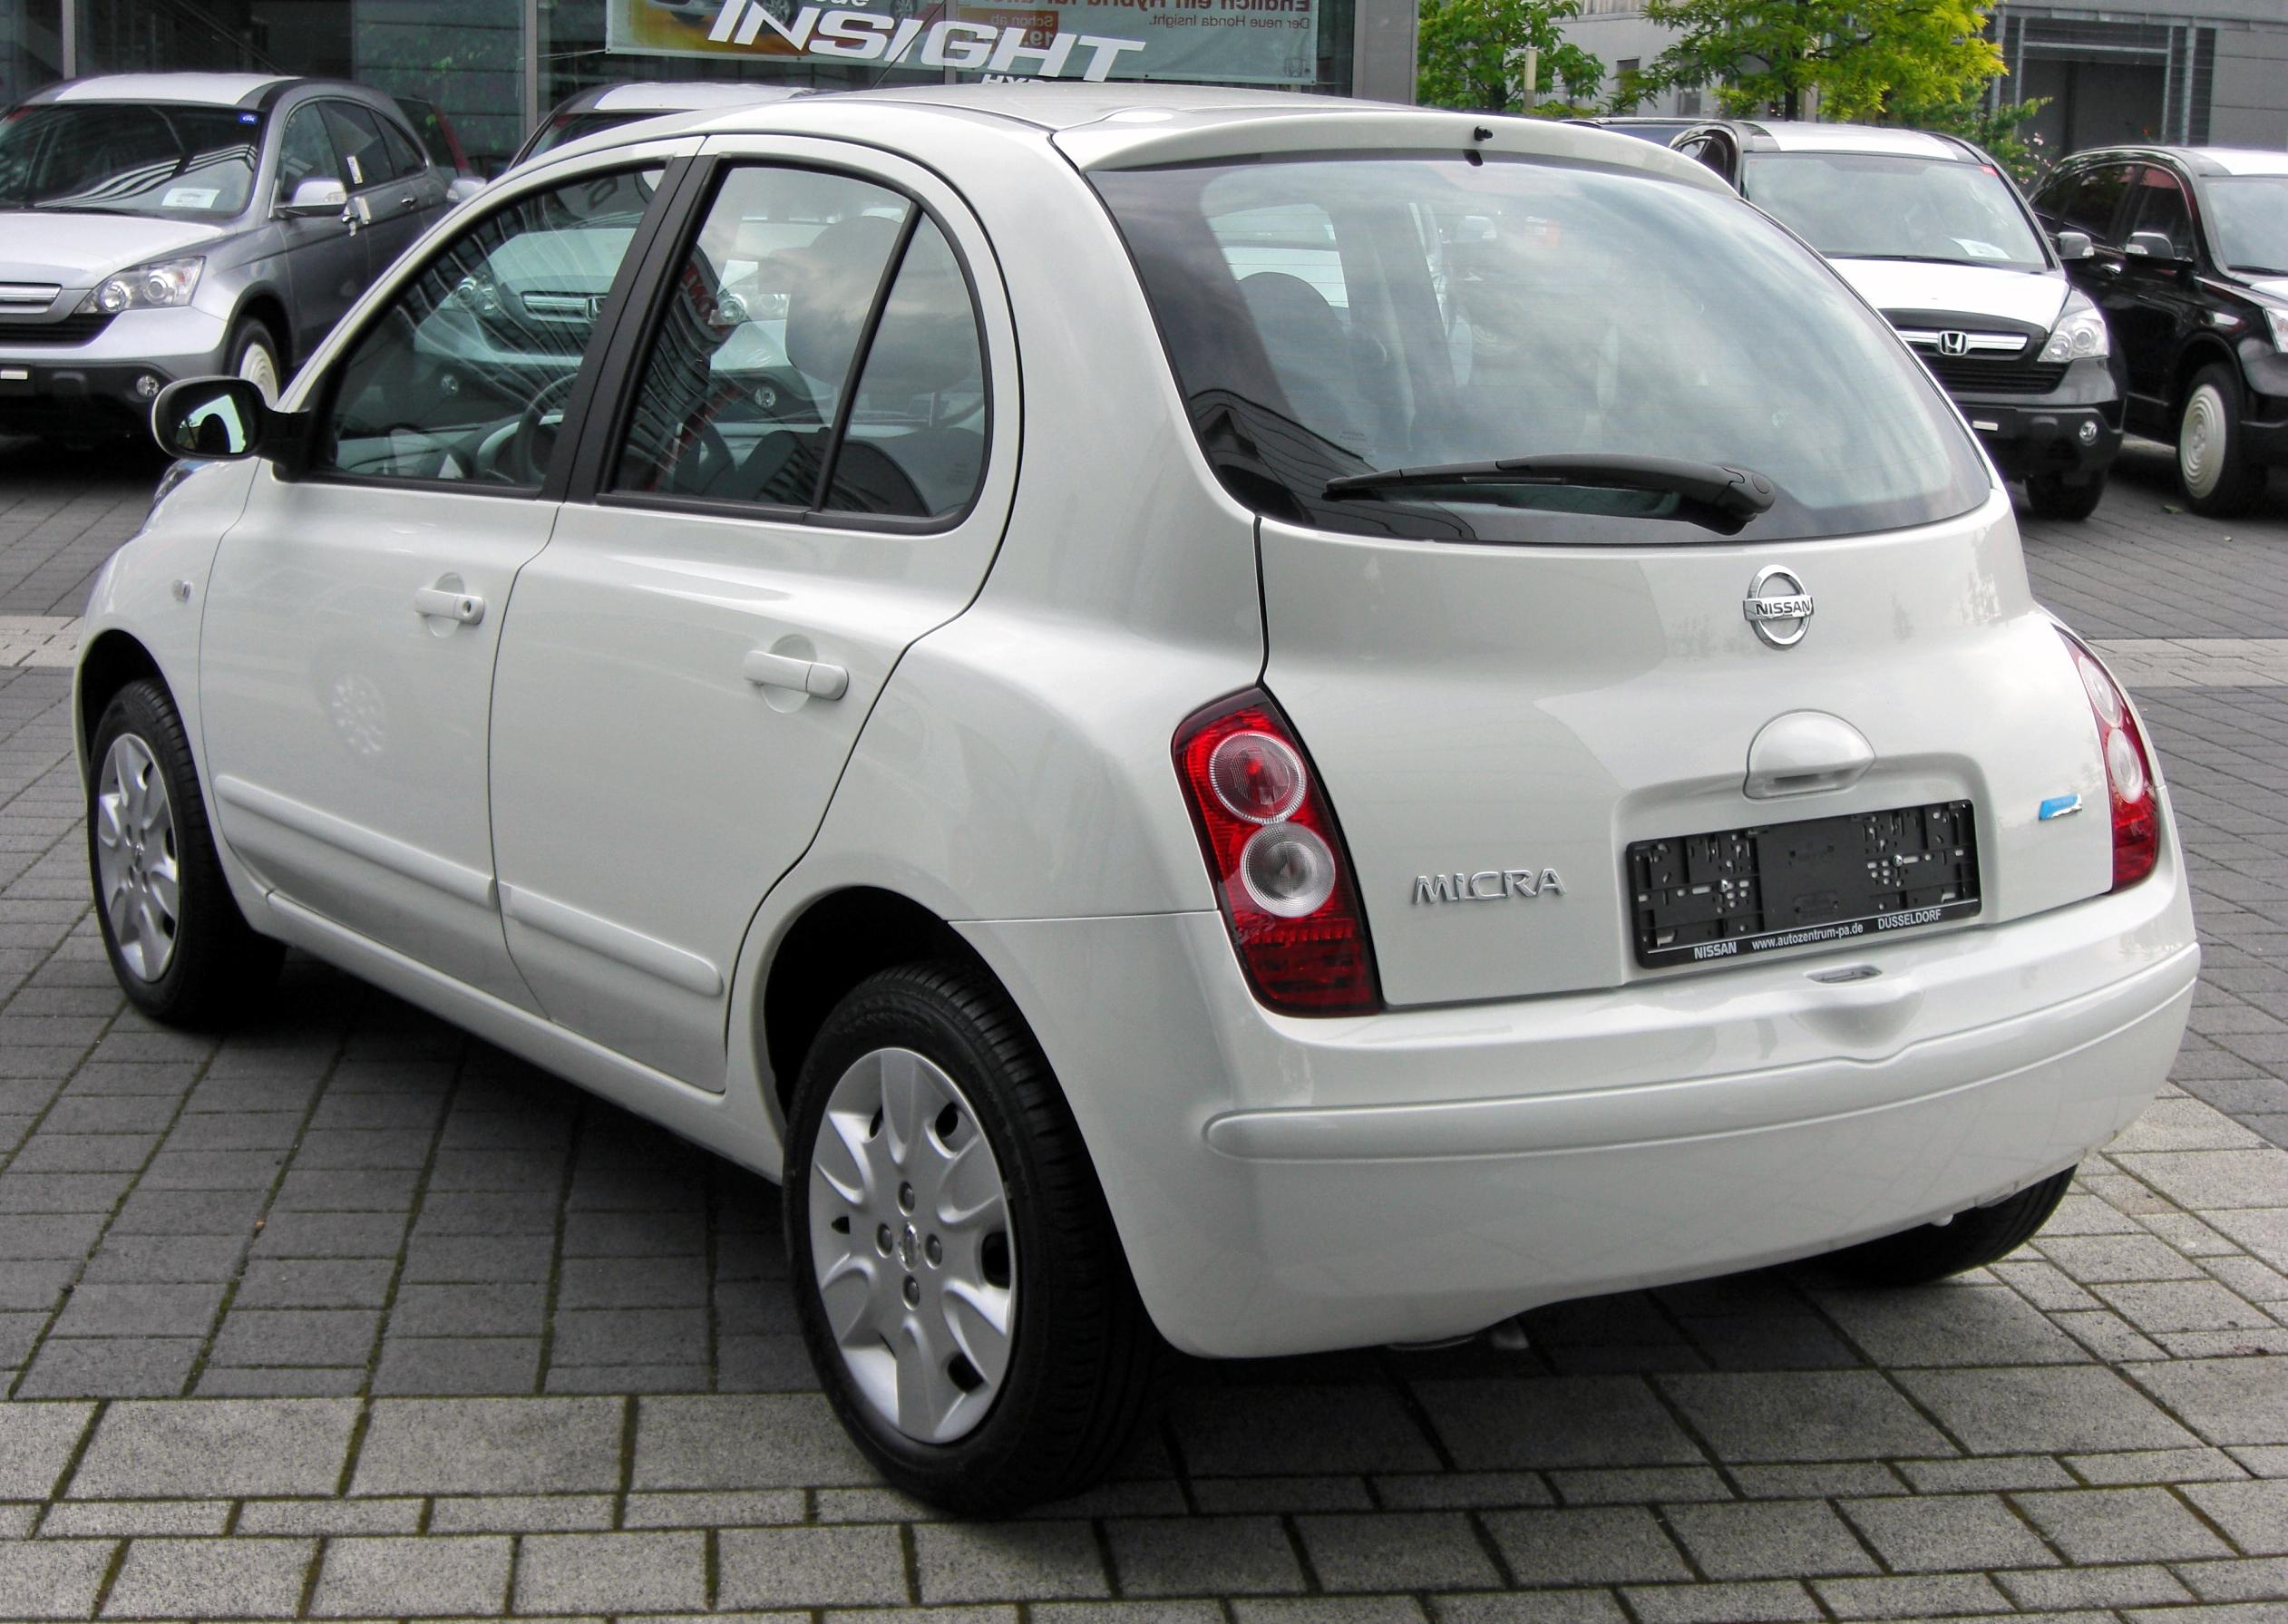 file nissan micra iii facelift 20090620 rear 1 jpg wikimedia commons. Black Bedroom Furniture Sets. Home Design Ideas